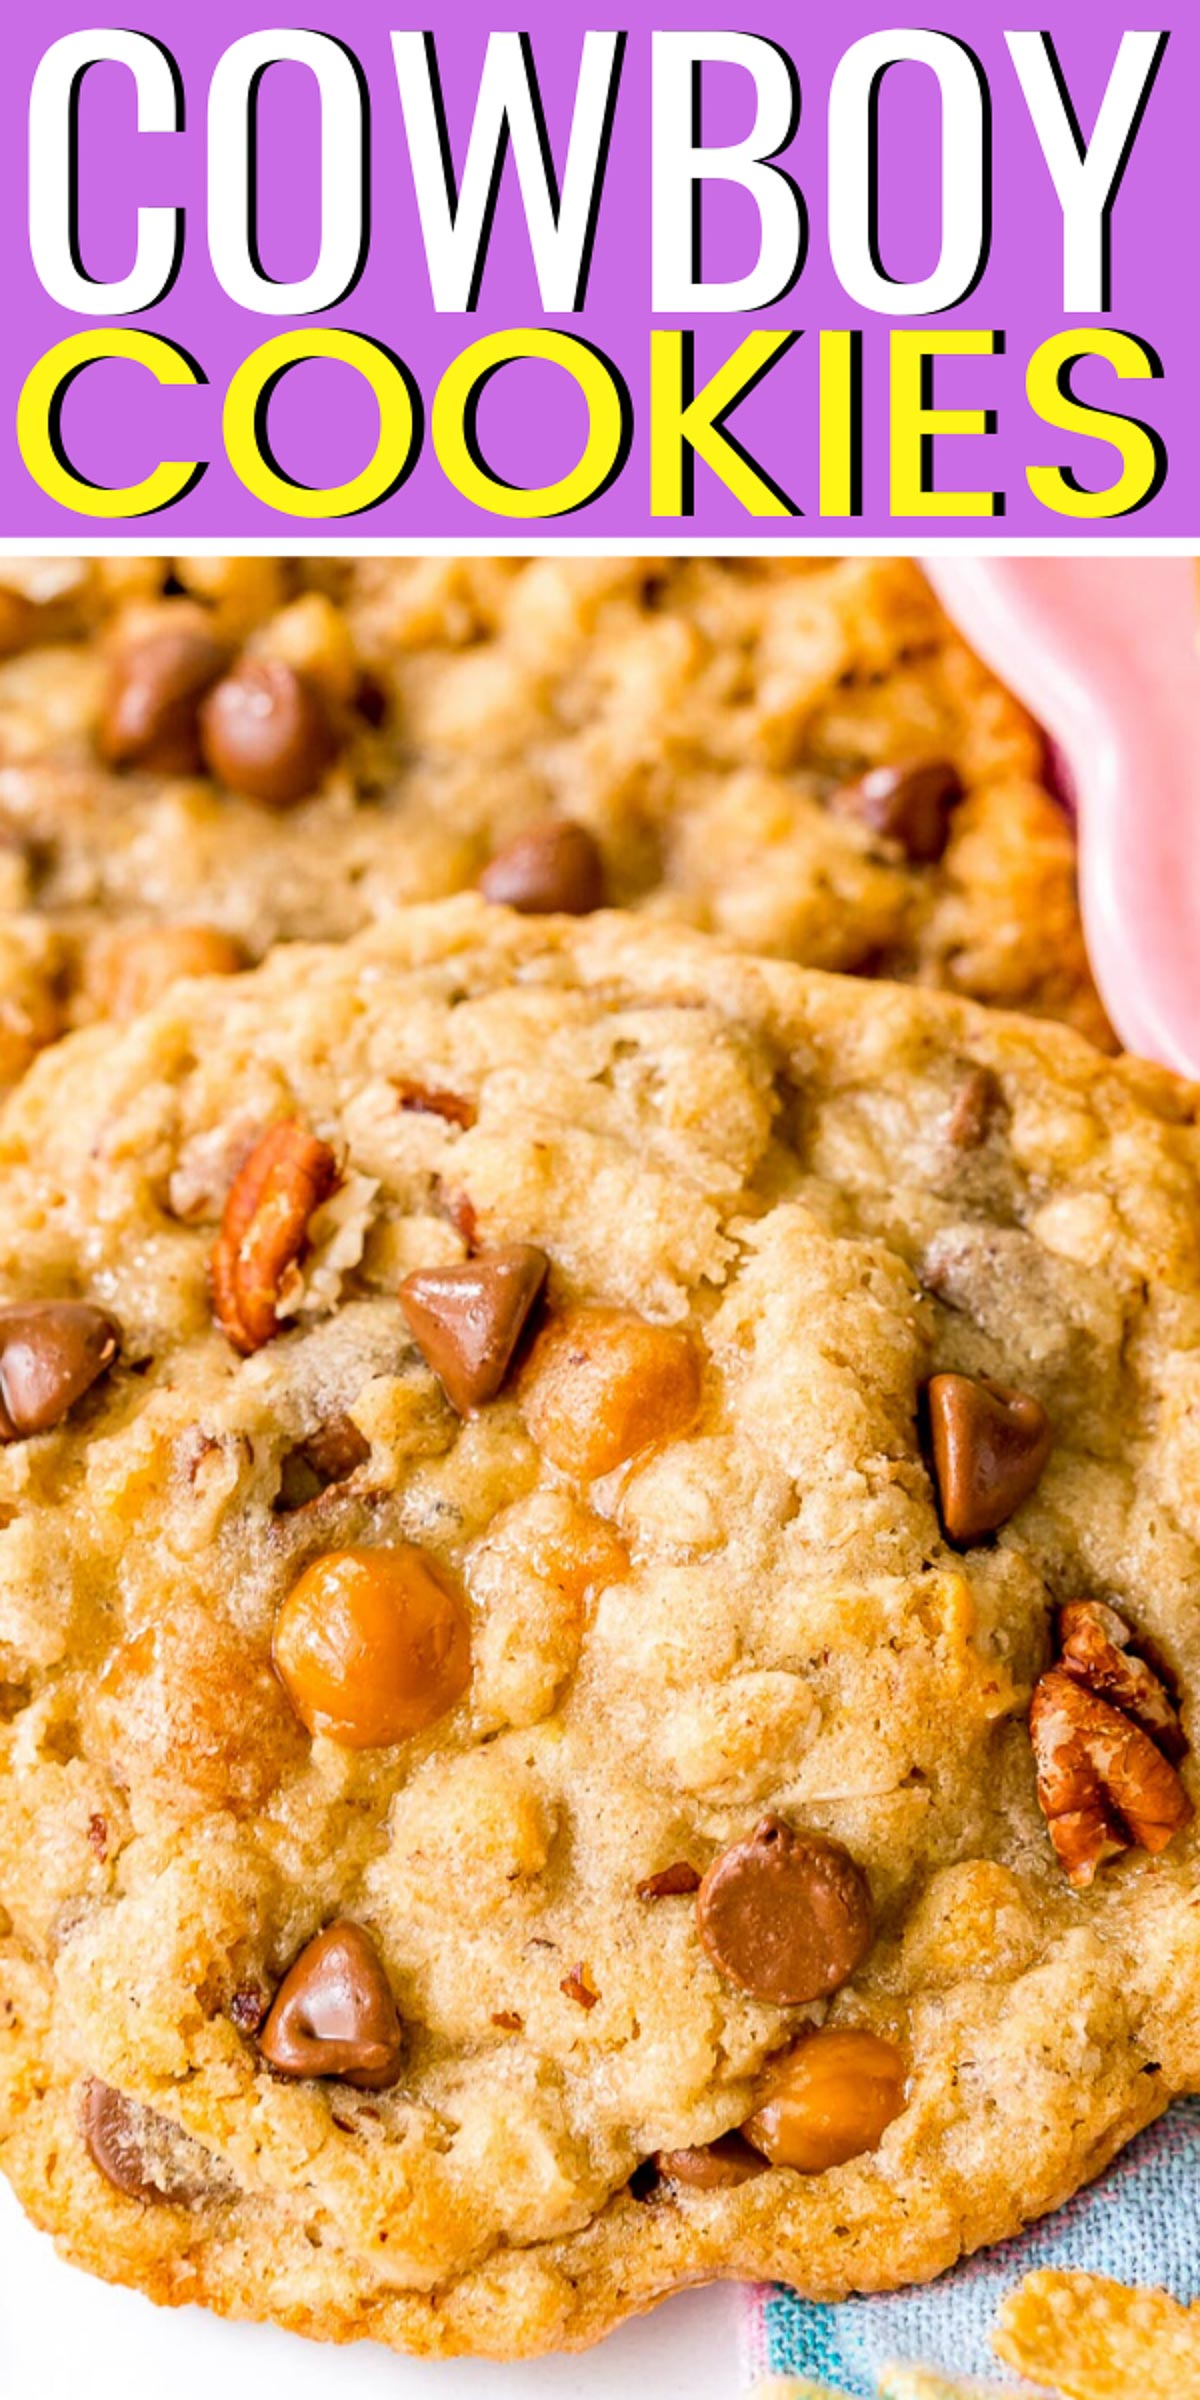 Cowboy Cookies are large oatmeal cookies with a crisp edge and soft chewy center loaded with pecans, chocolate chips, caramel, coconut, and cornflakes. via @sugarandsoulco